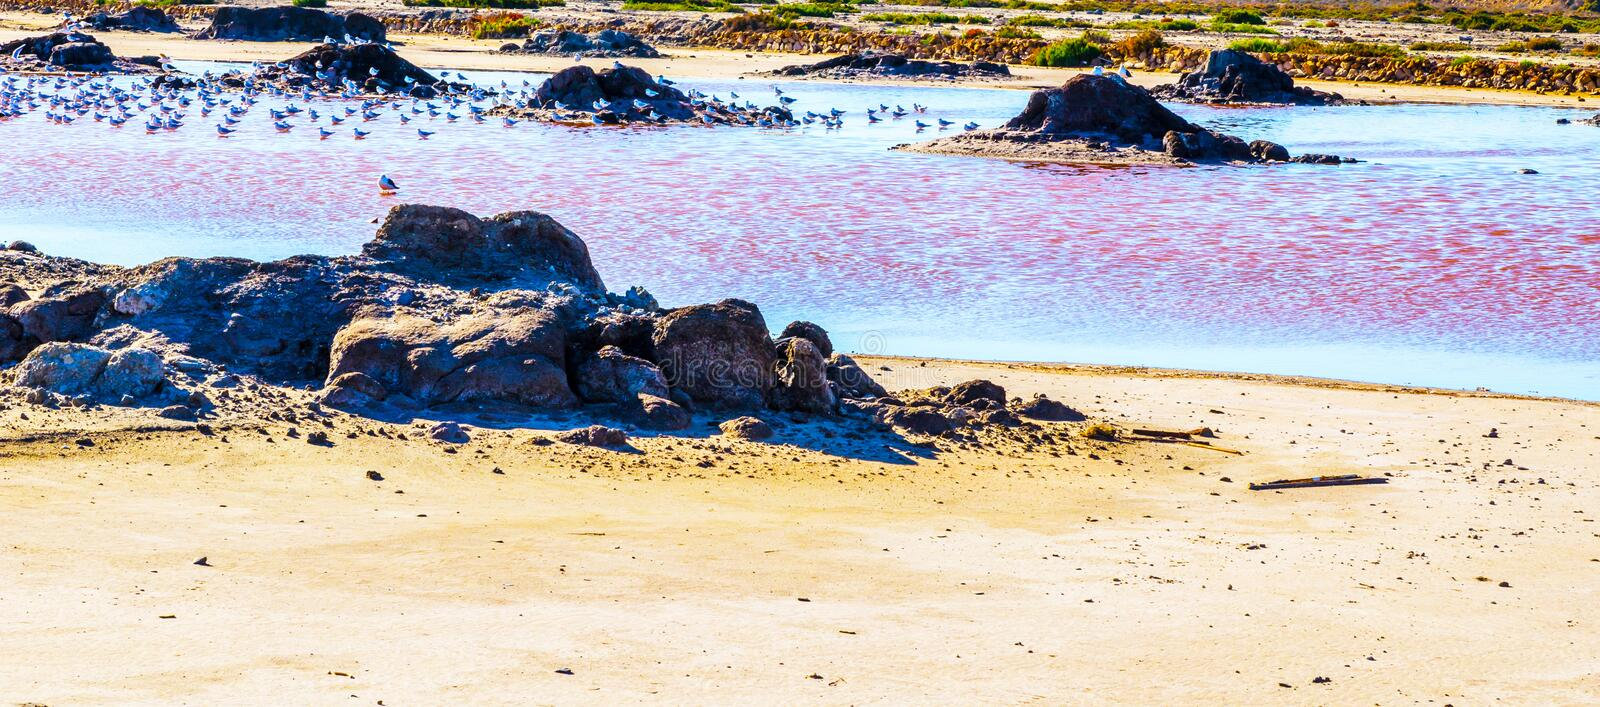 Pink lake in spain, unusual phenomenon, mineral influence on water. Rose river royalty free stock images